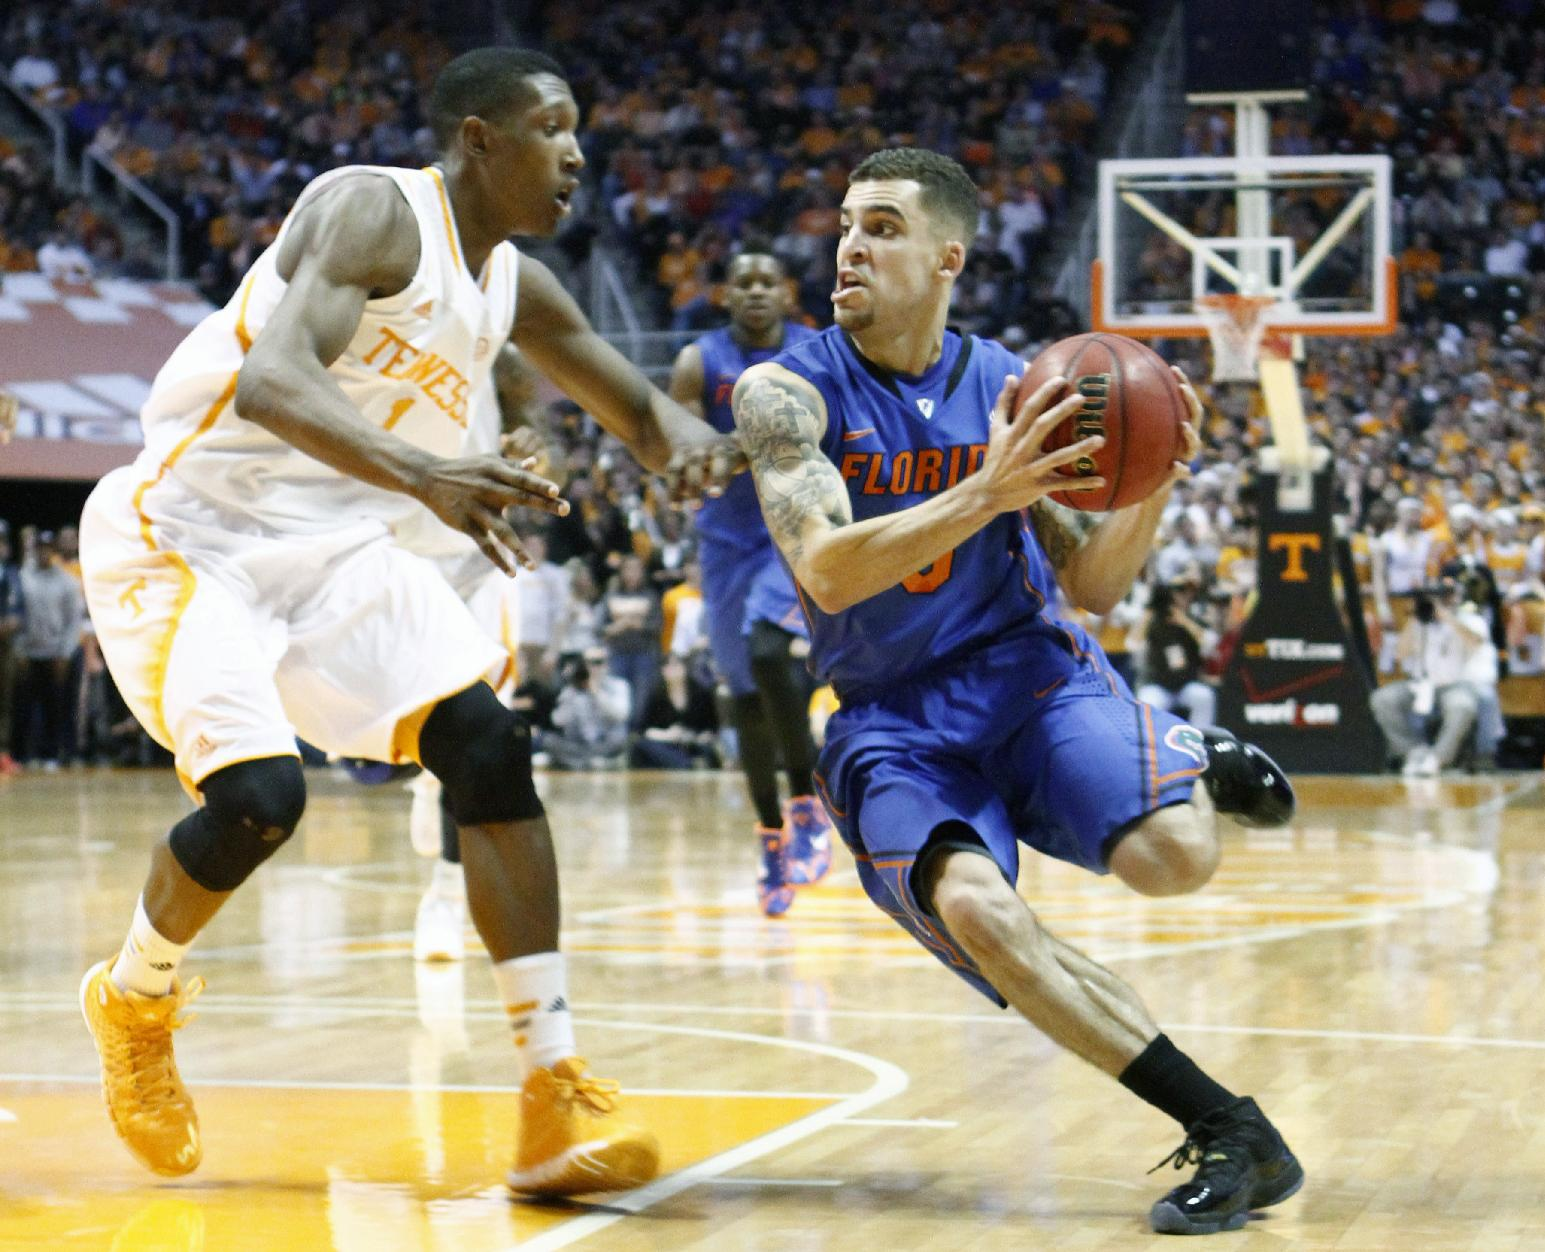 Florida guard Scottie Wilbekin, right, drives against Tennessee guard Josh Richardson, left, in the second half of an NCAA college basketball game, Tuesday, Feb. 11, 2014, in Knoxville, Tenn. Florida won 67-58